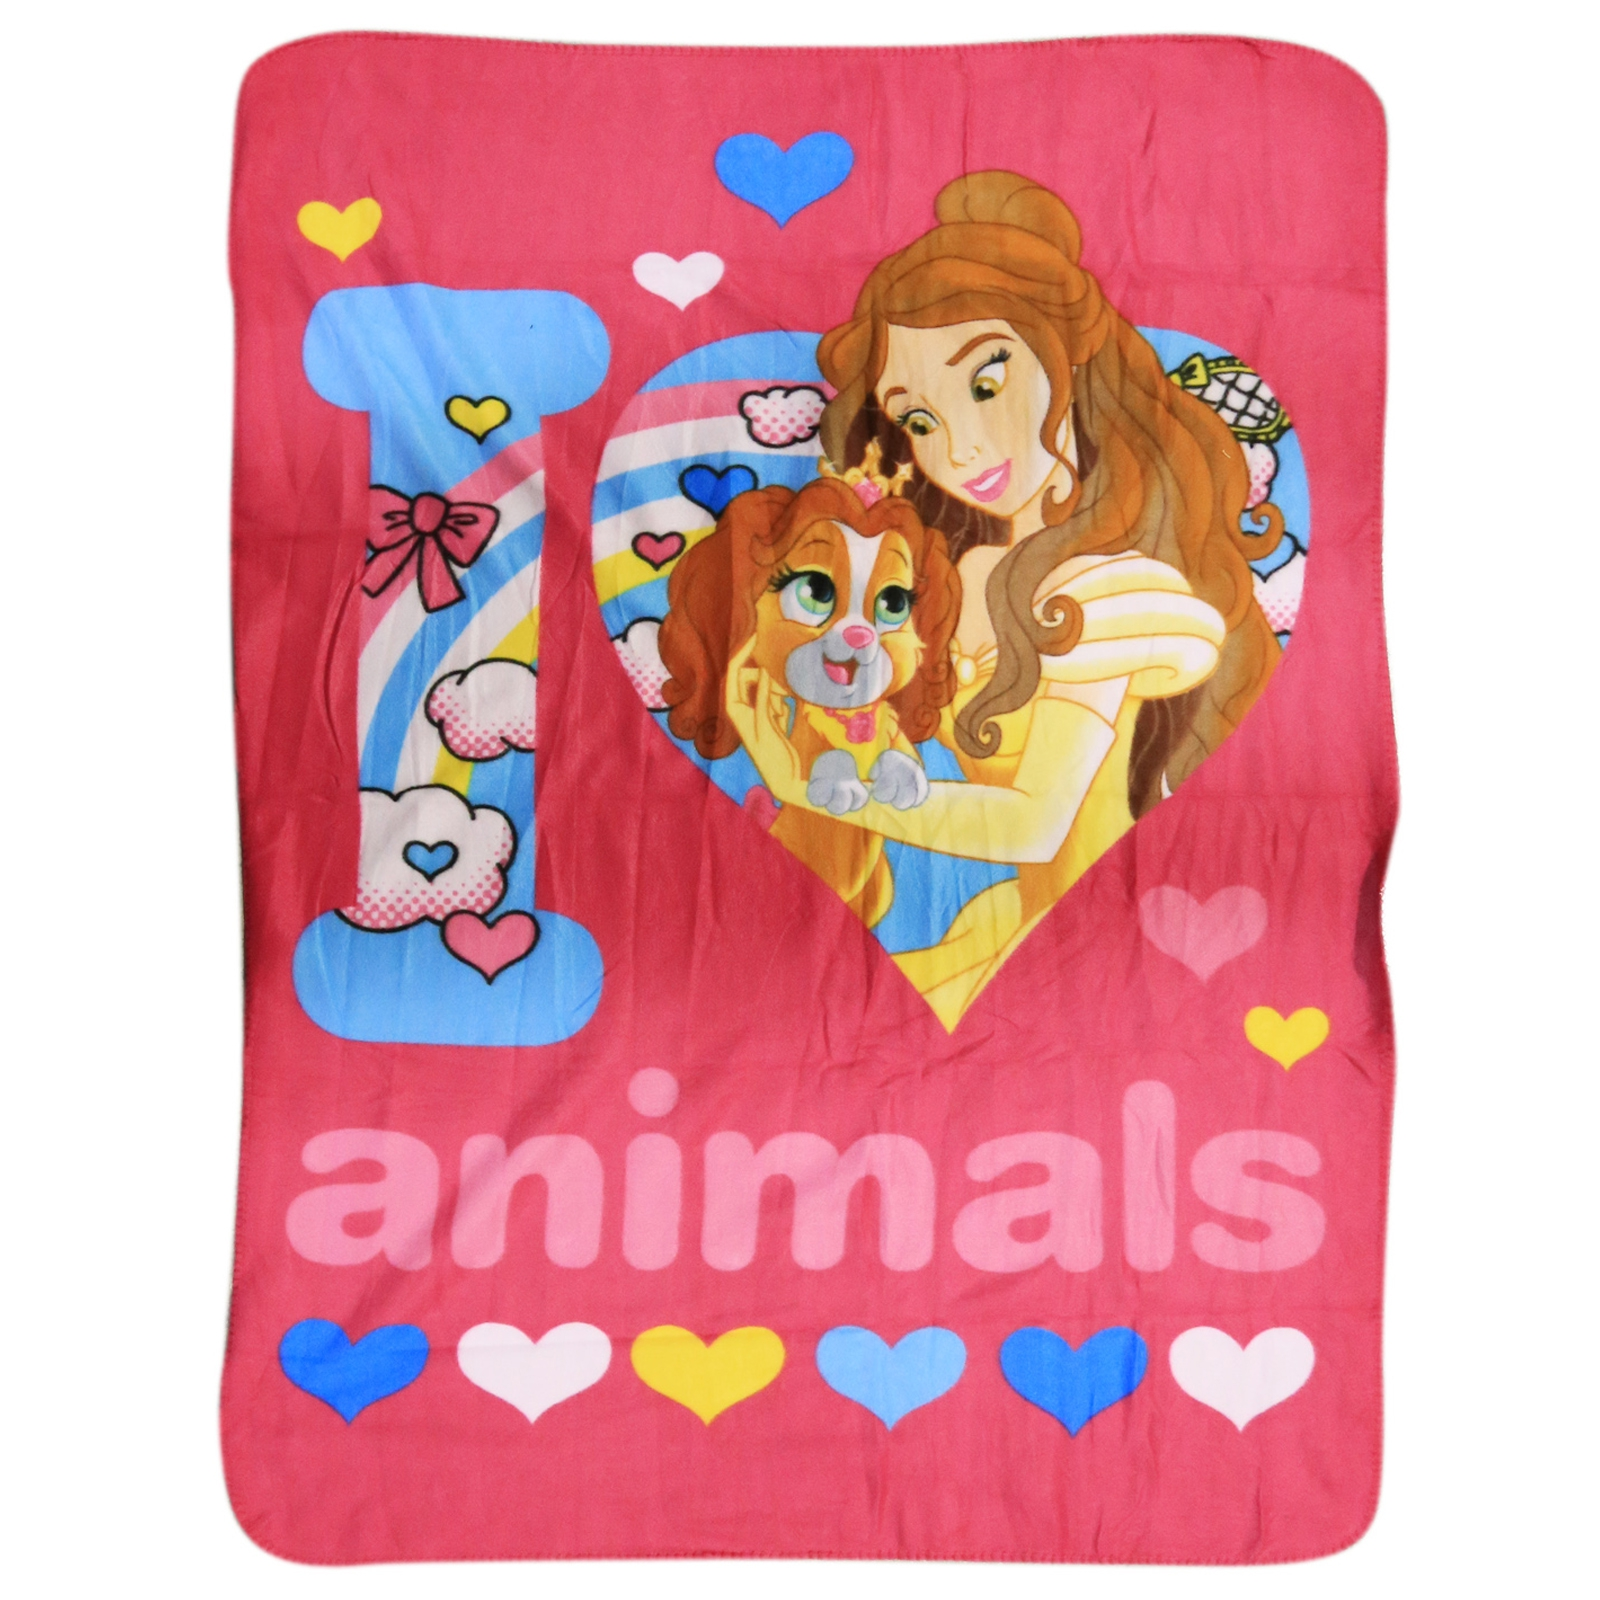 Beauty and the Beast Fleece Throw Blanket 45 x 60 Inch Girls Bedroom Home Decor